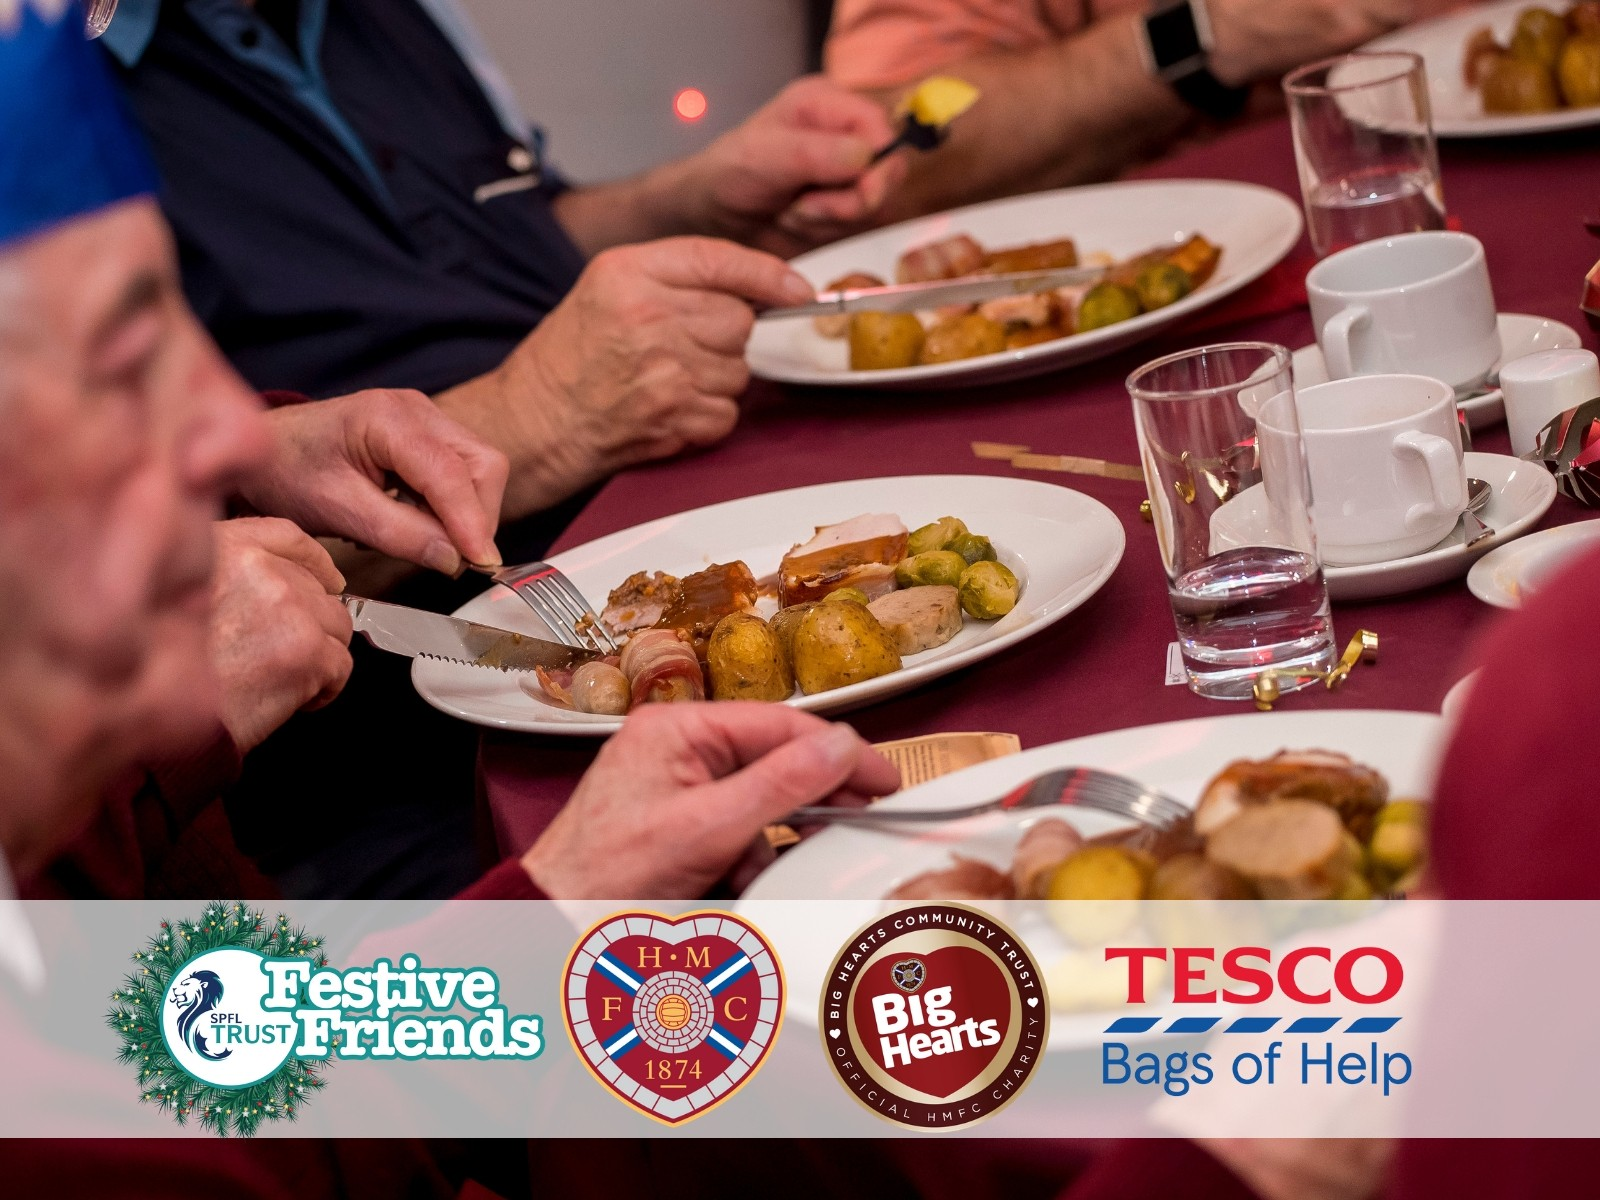 » Christmas Day Cheer: 100 to enjoy free festive meal with Big Hearts